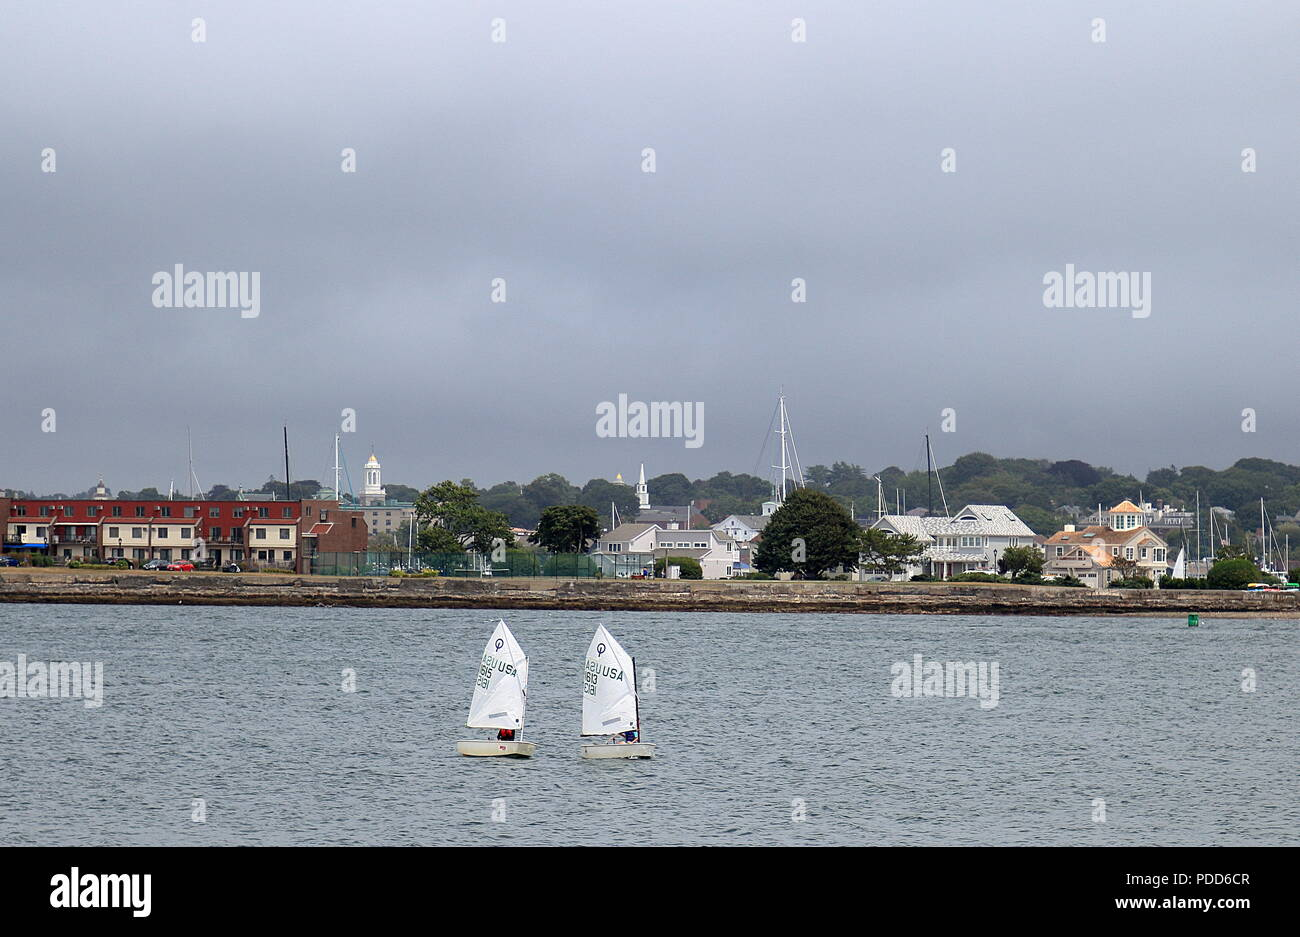 Newport, Rhode Island - July 26, 2015: Sailboats cruising the waters of Narragansett Bay on a summer afternoon - Stock Image